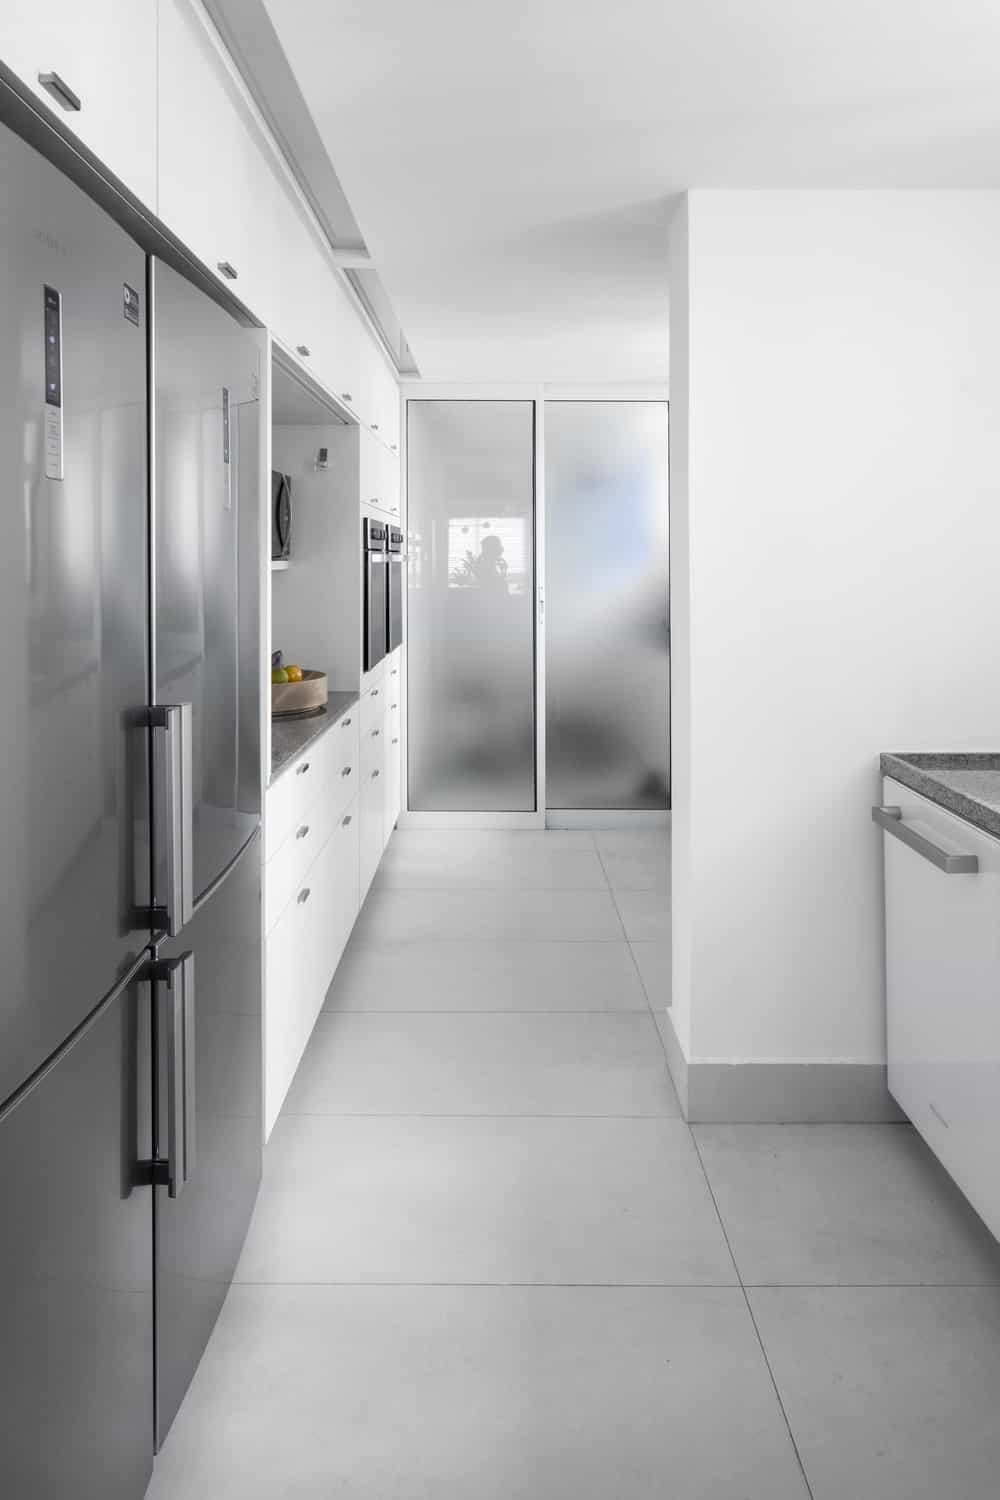 This is a close look at the long and narrow kitchen with white cabinetry that makes the stainless steel appliances stand out.